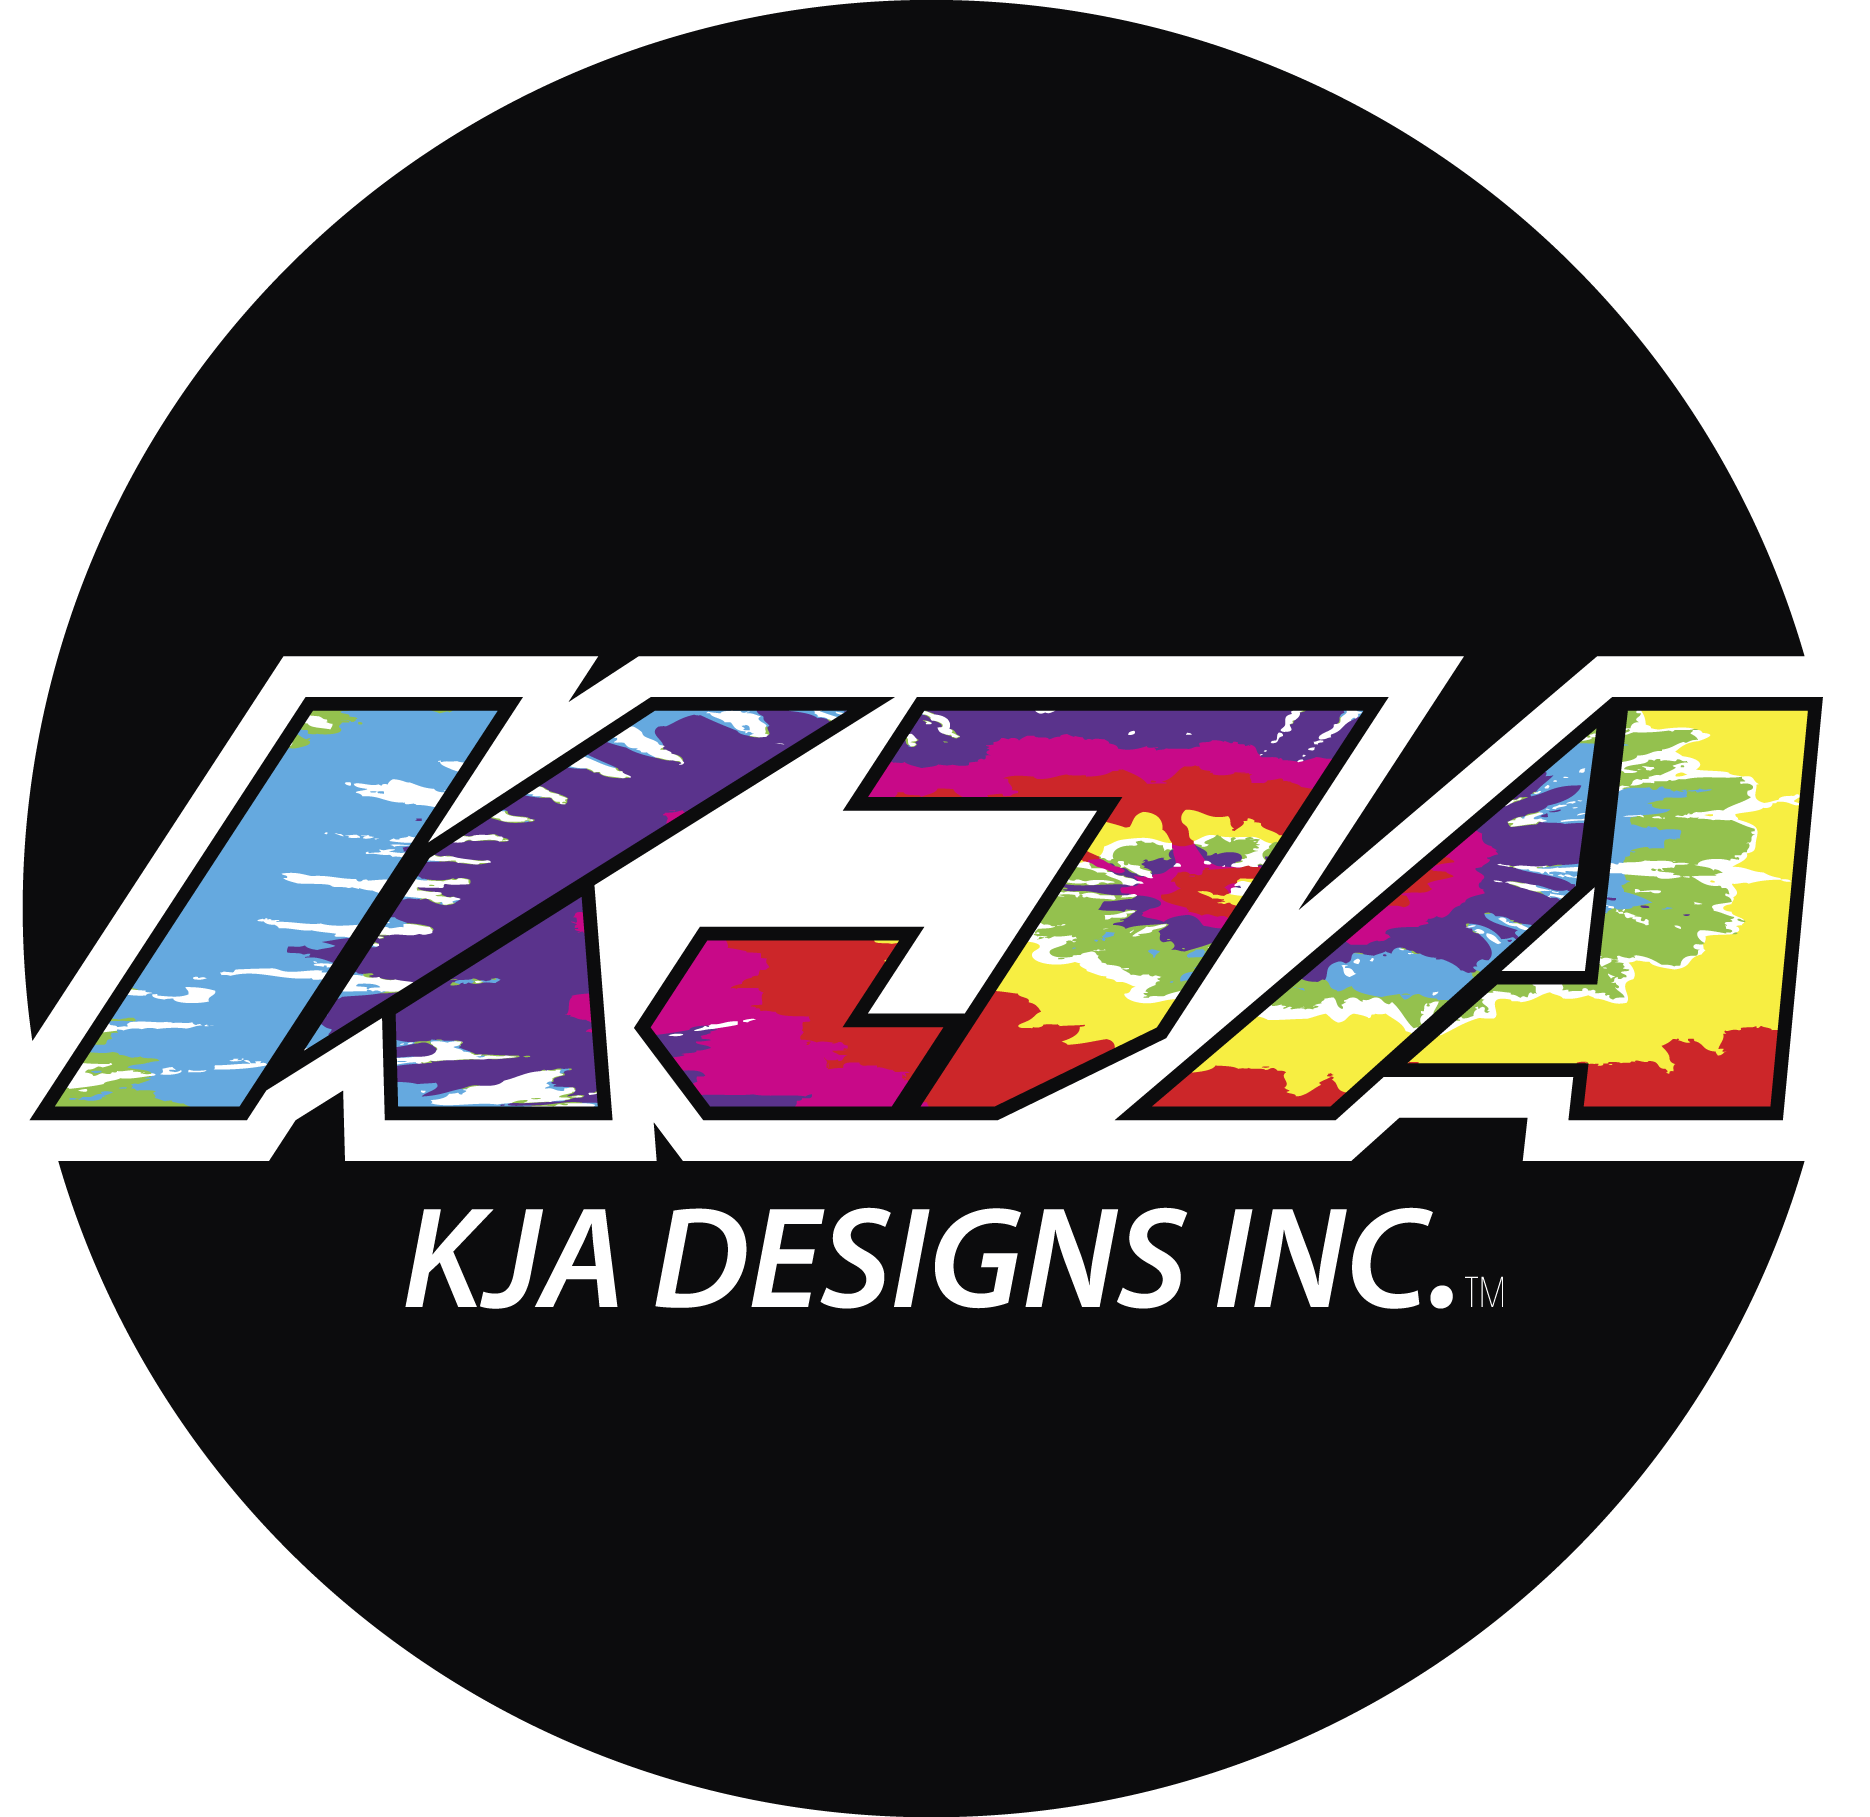 KJA Designs Inc.™ 2A on site